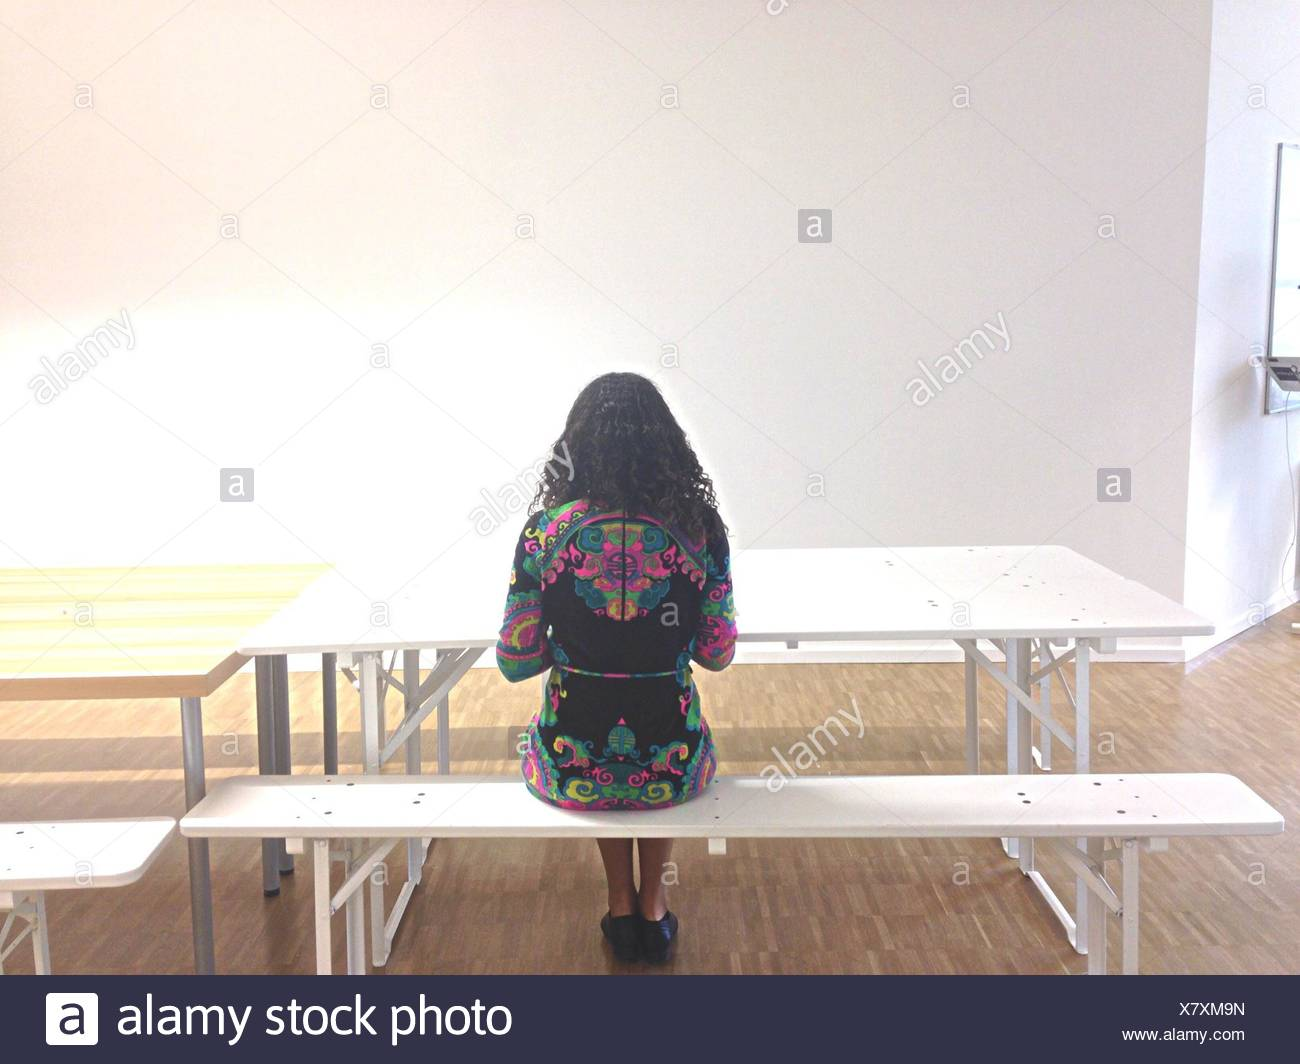 Full Length Rear View Of Young Woman Sitting In Cafeteria - Stock Image